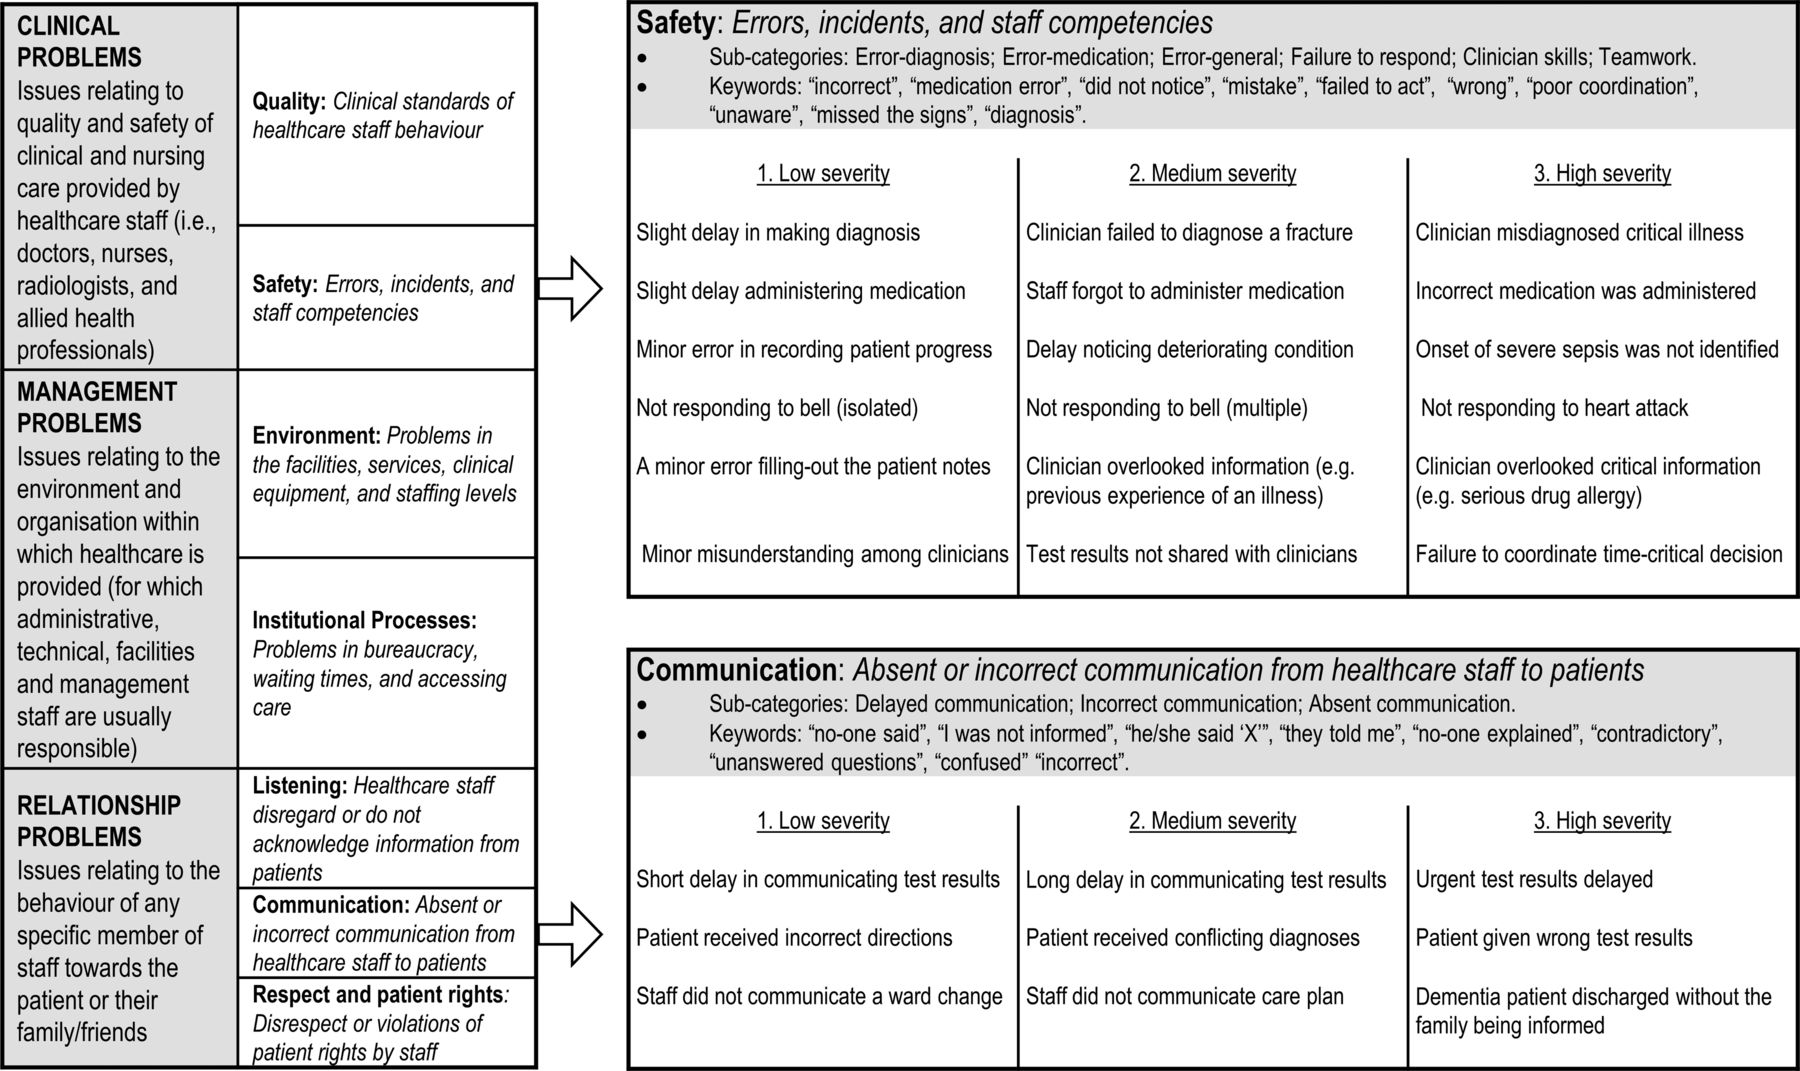 The Healthcare Complaints Analysis Tool: development and reliability